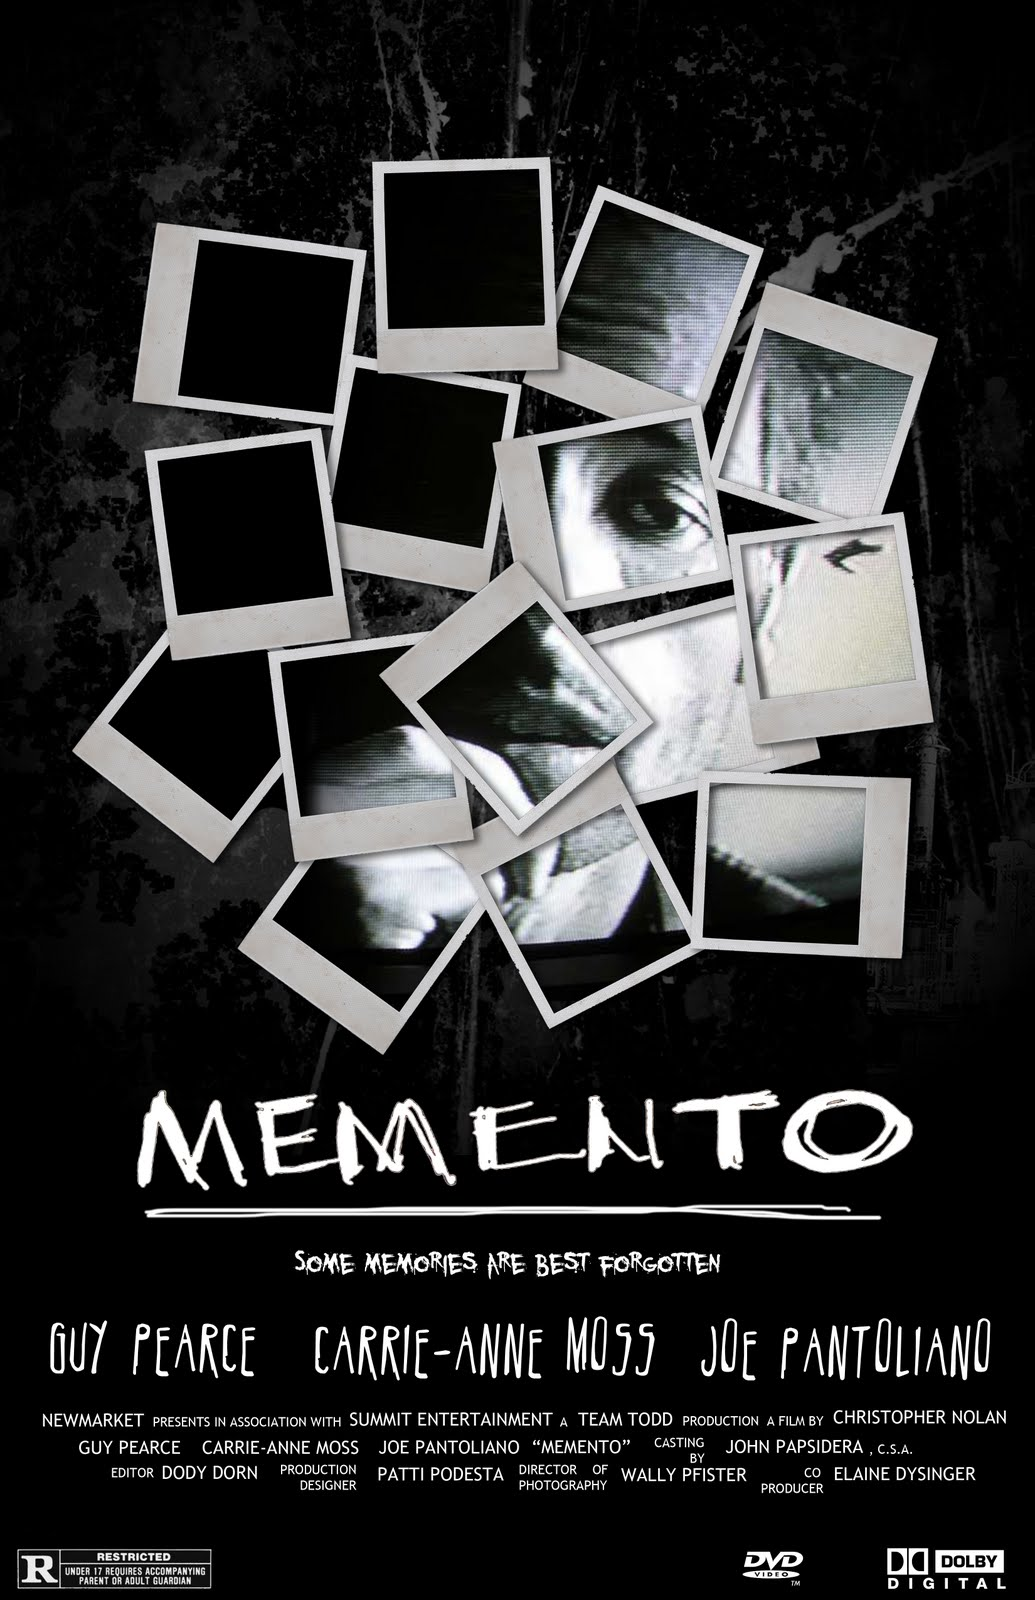 memento film 2000 nolan mind christopher poster movies mindfuck posters guy psychological week imgur narrators pearce thriller bender blow which